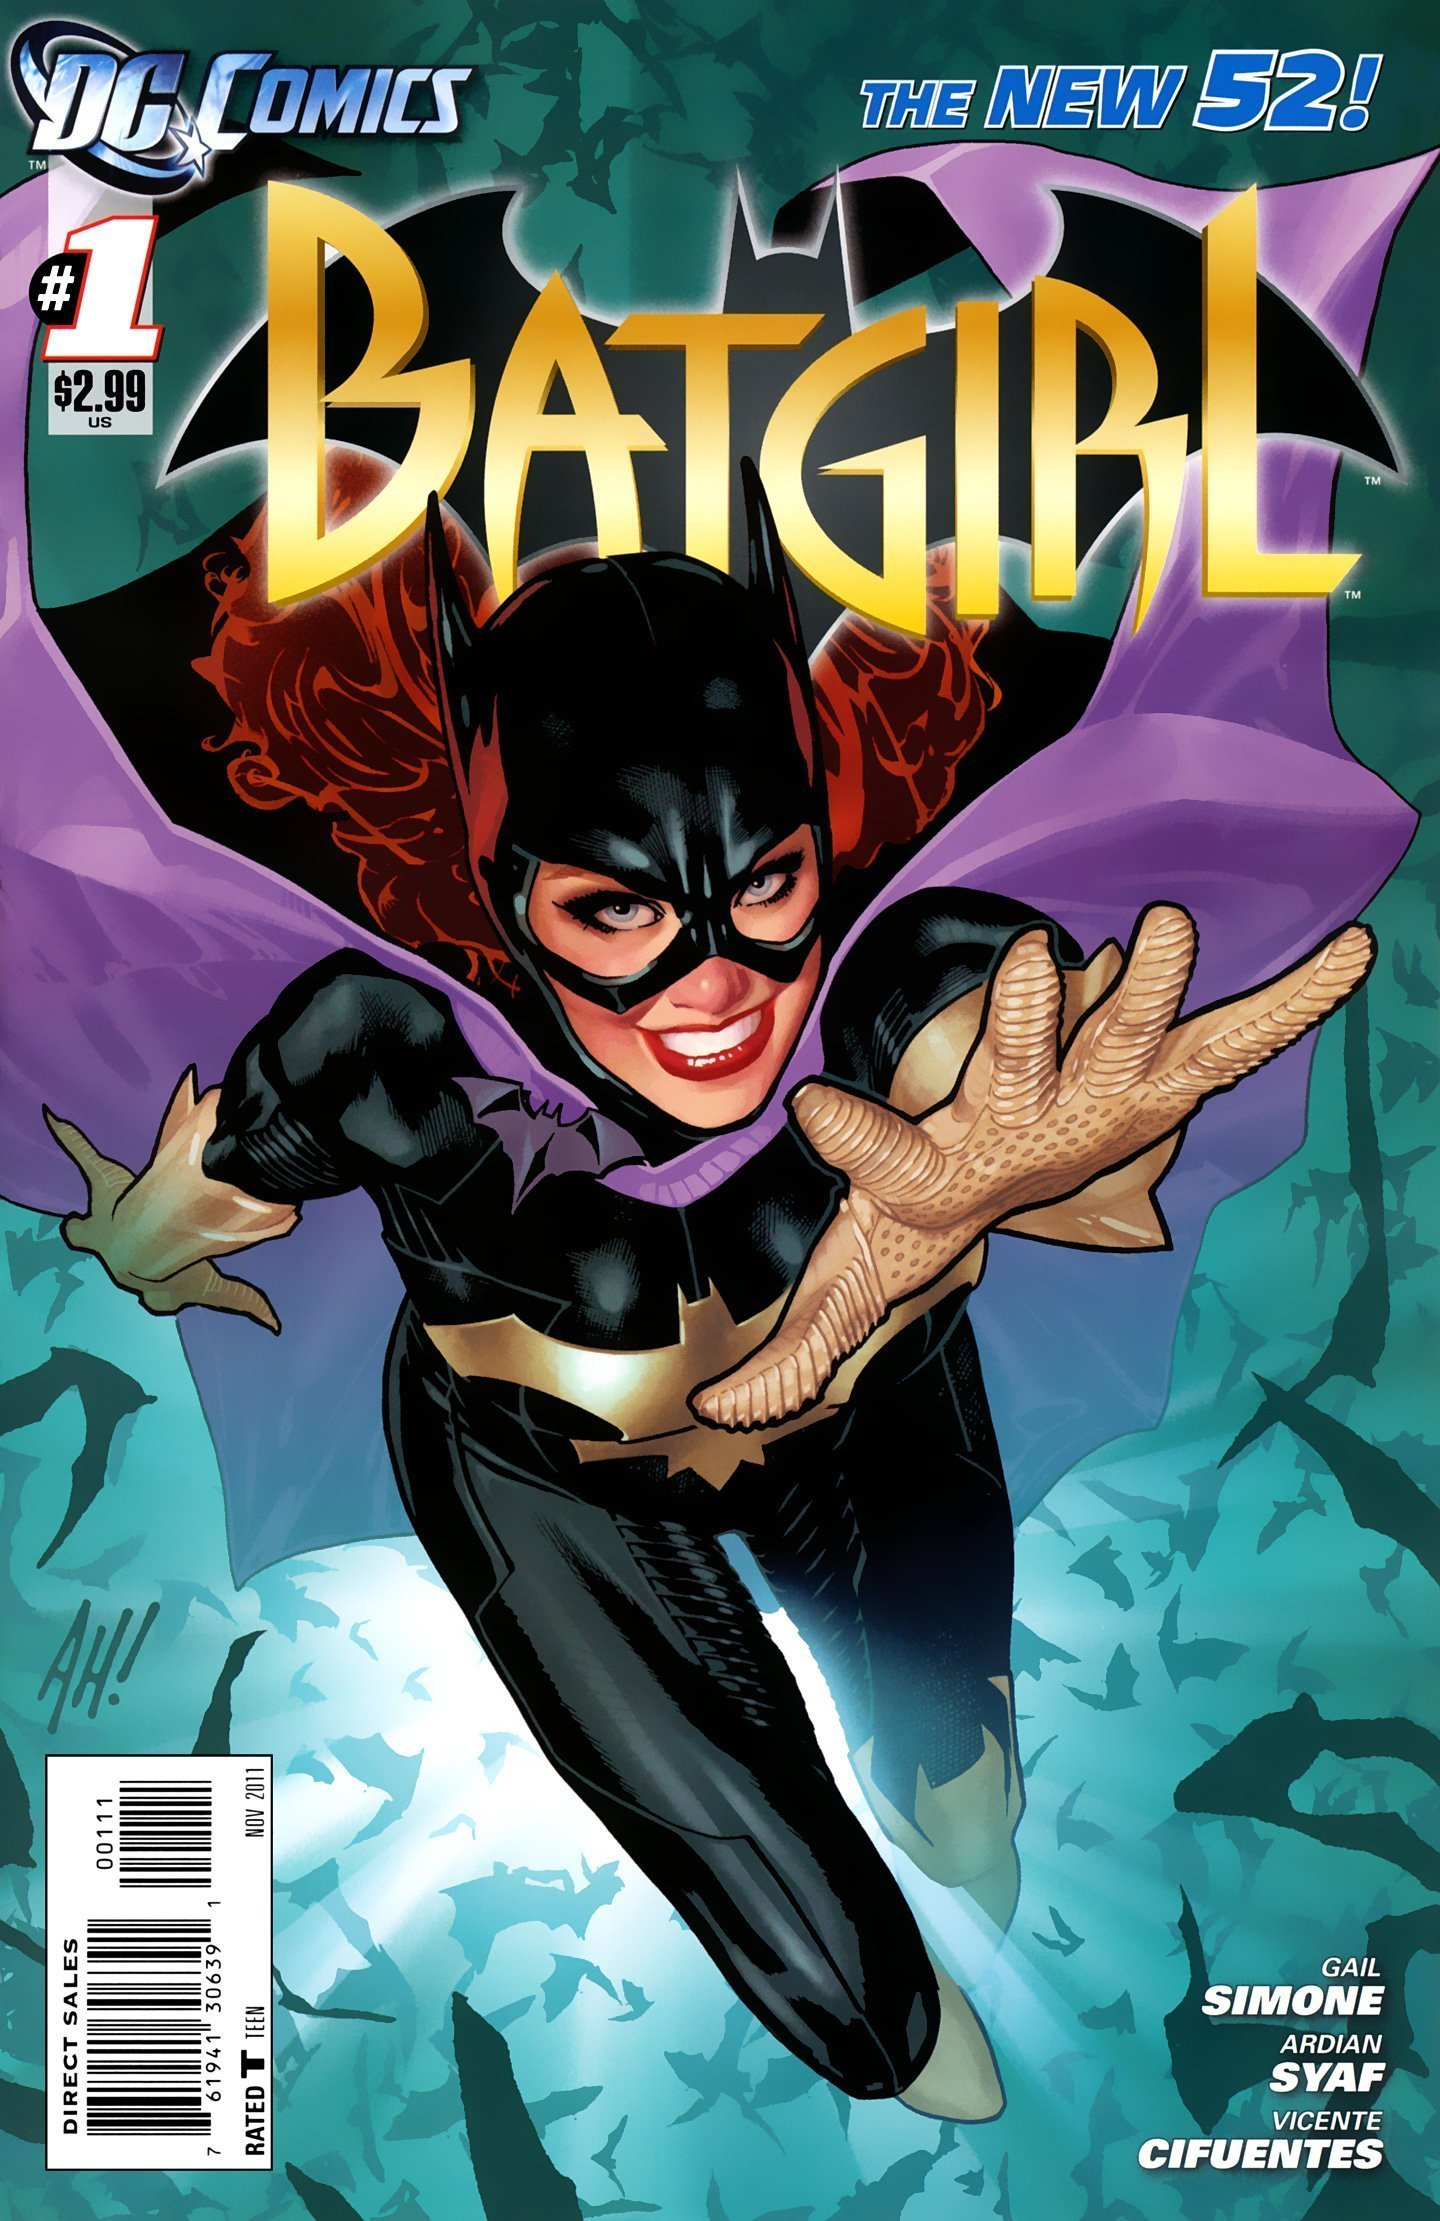 Couverture du comic DC, Batgirl Vol 4 1 (New 52)